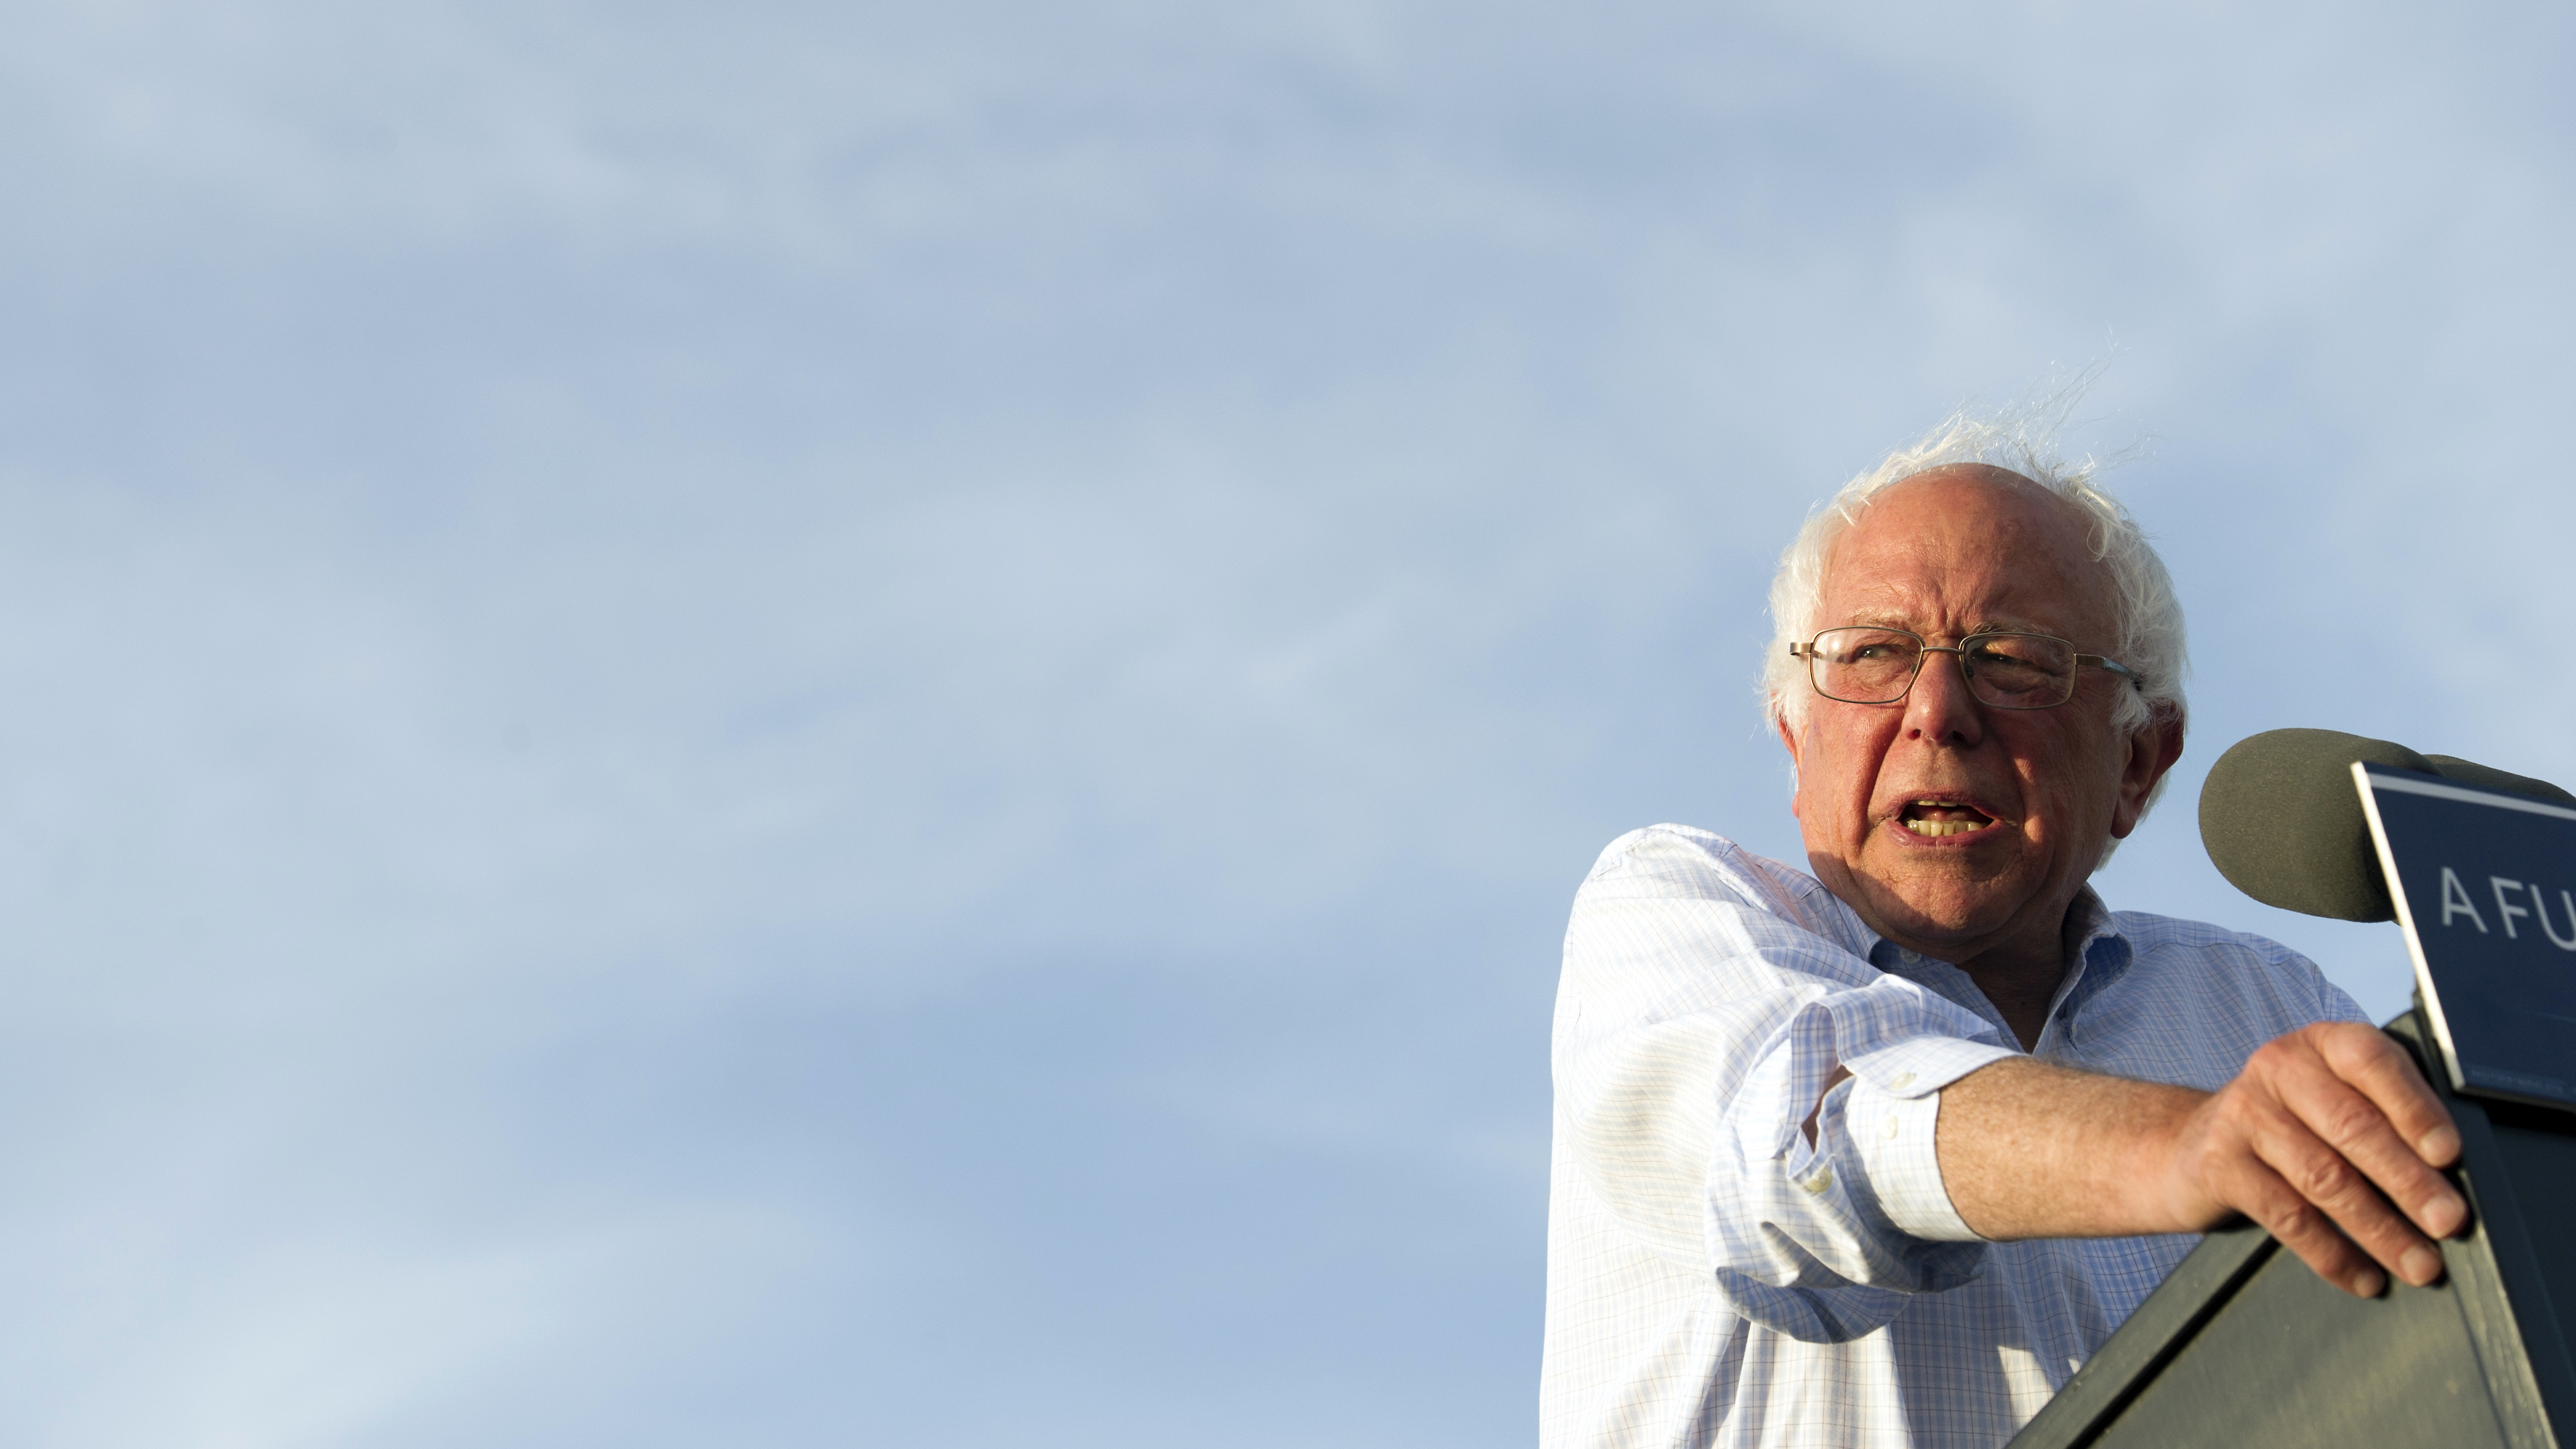 Sanders says he will vote for Clinton